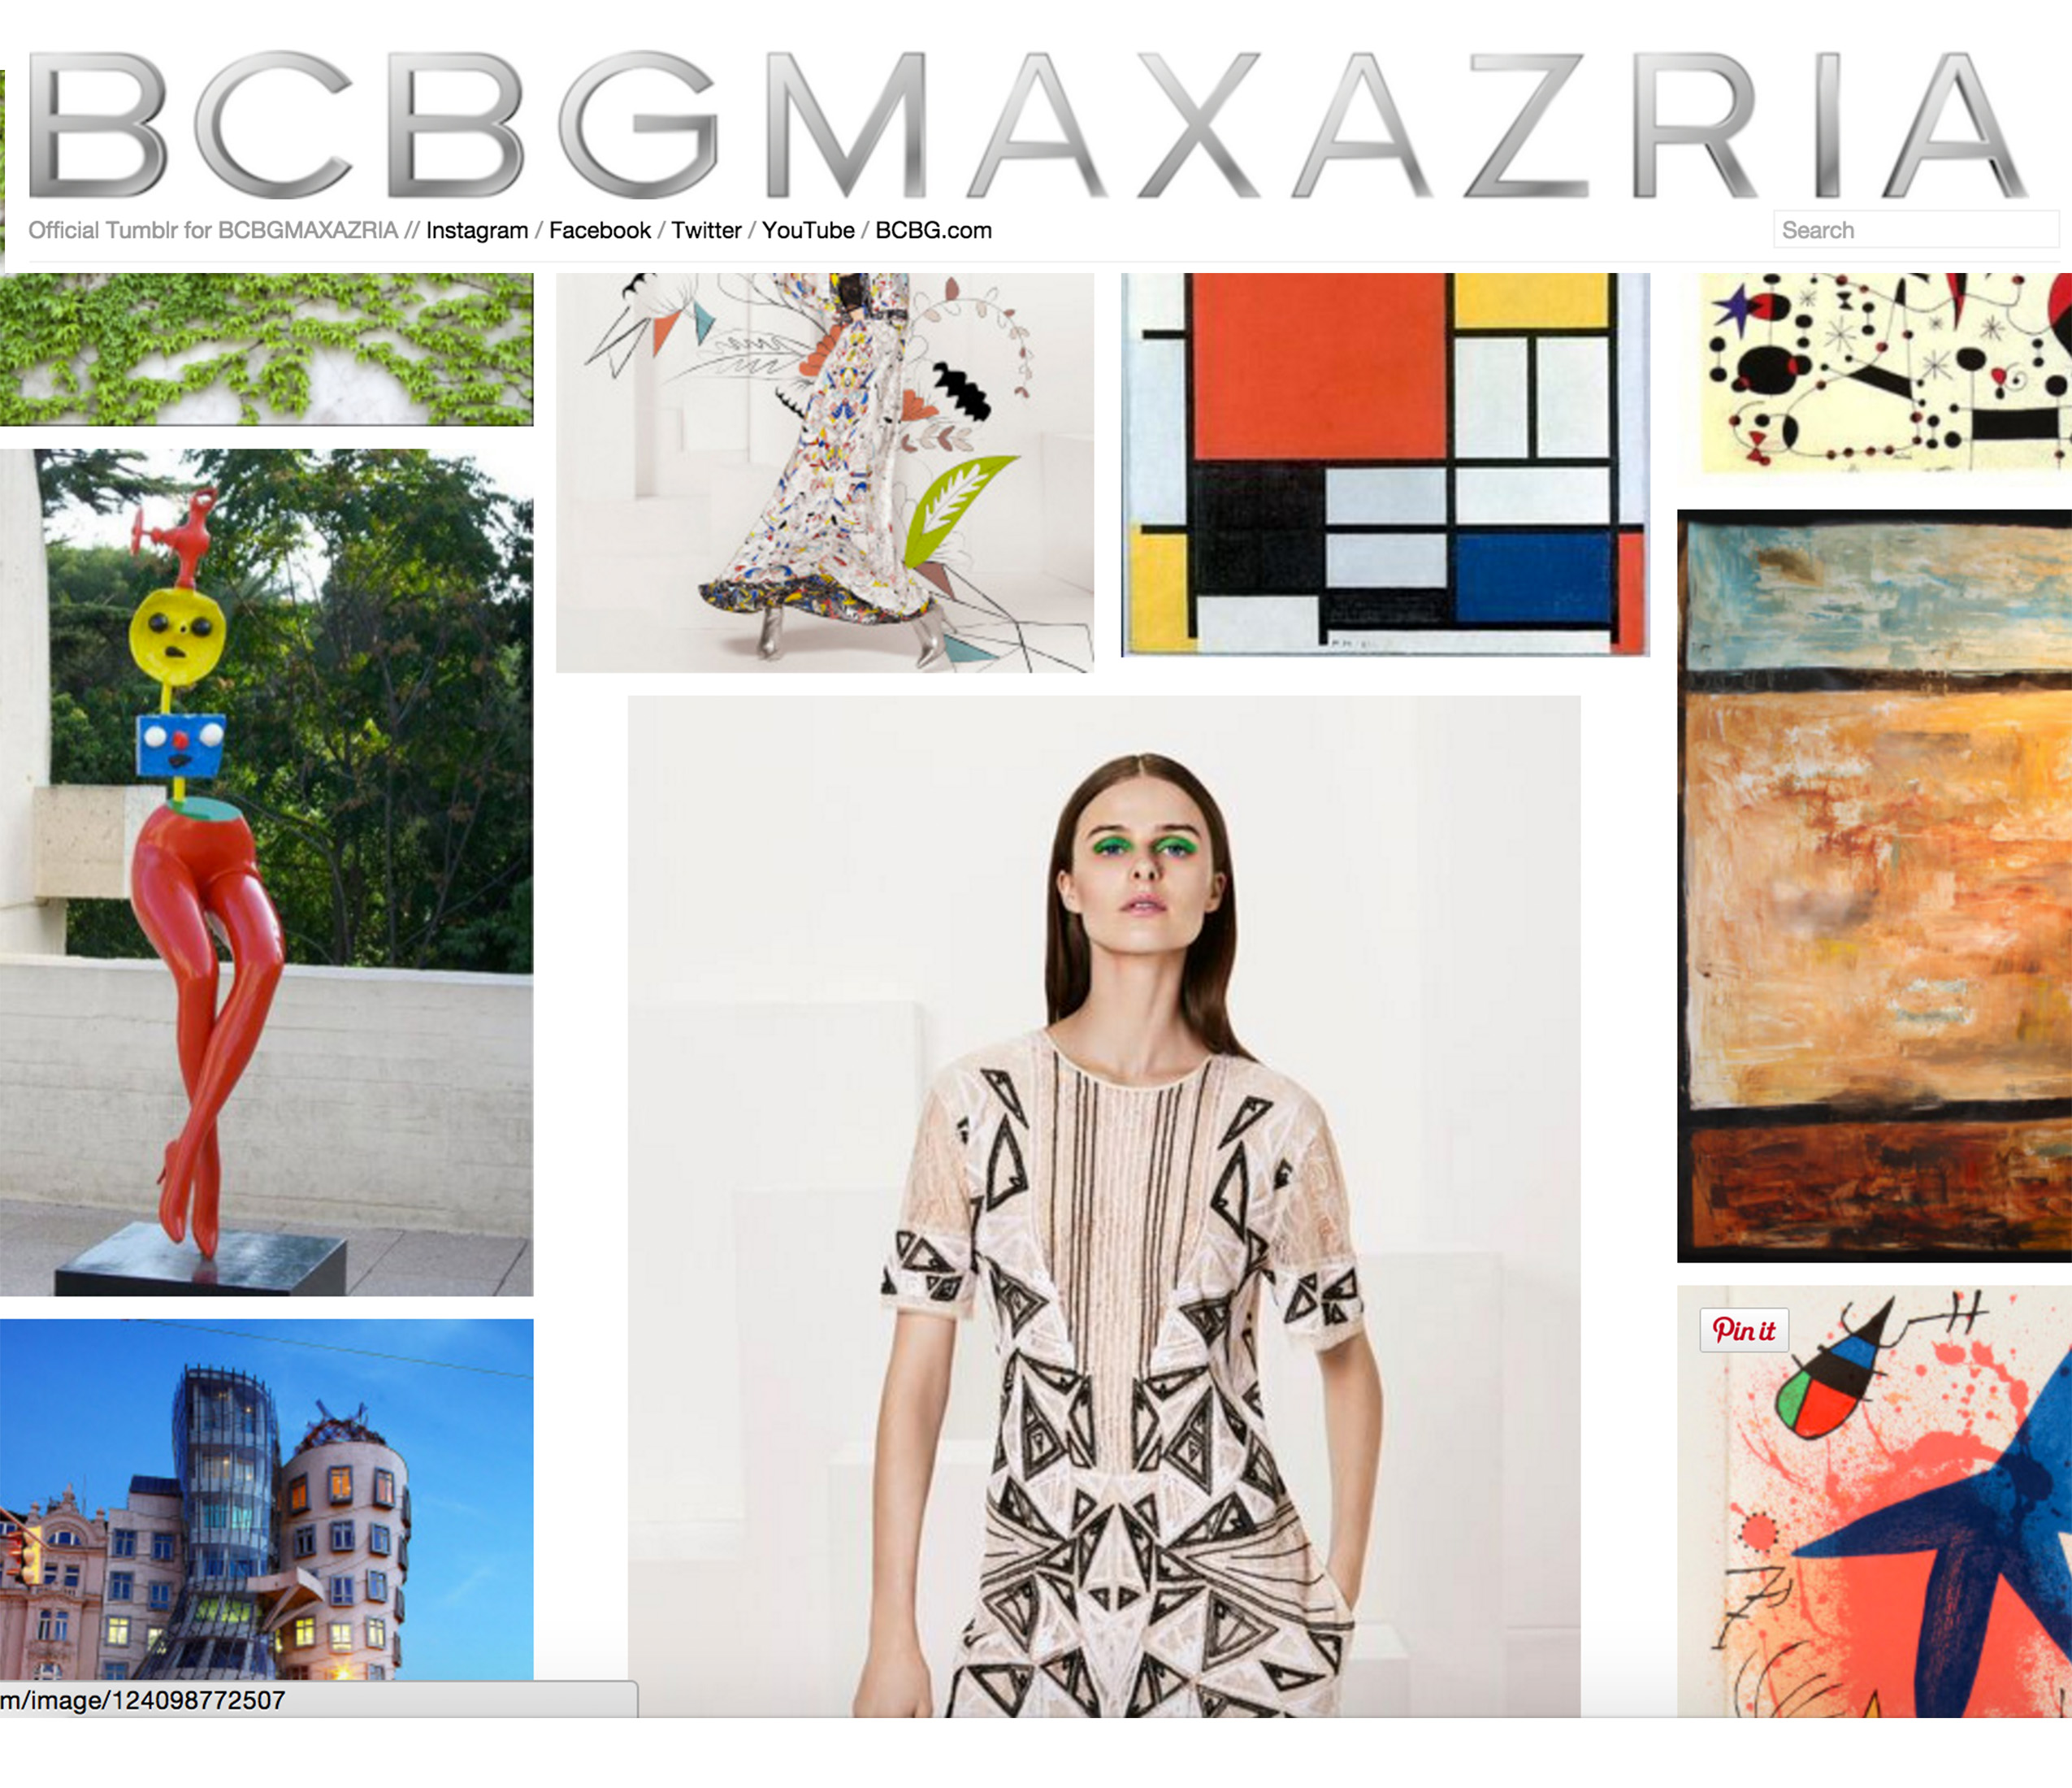 BCBG Personal Tumblr Selection